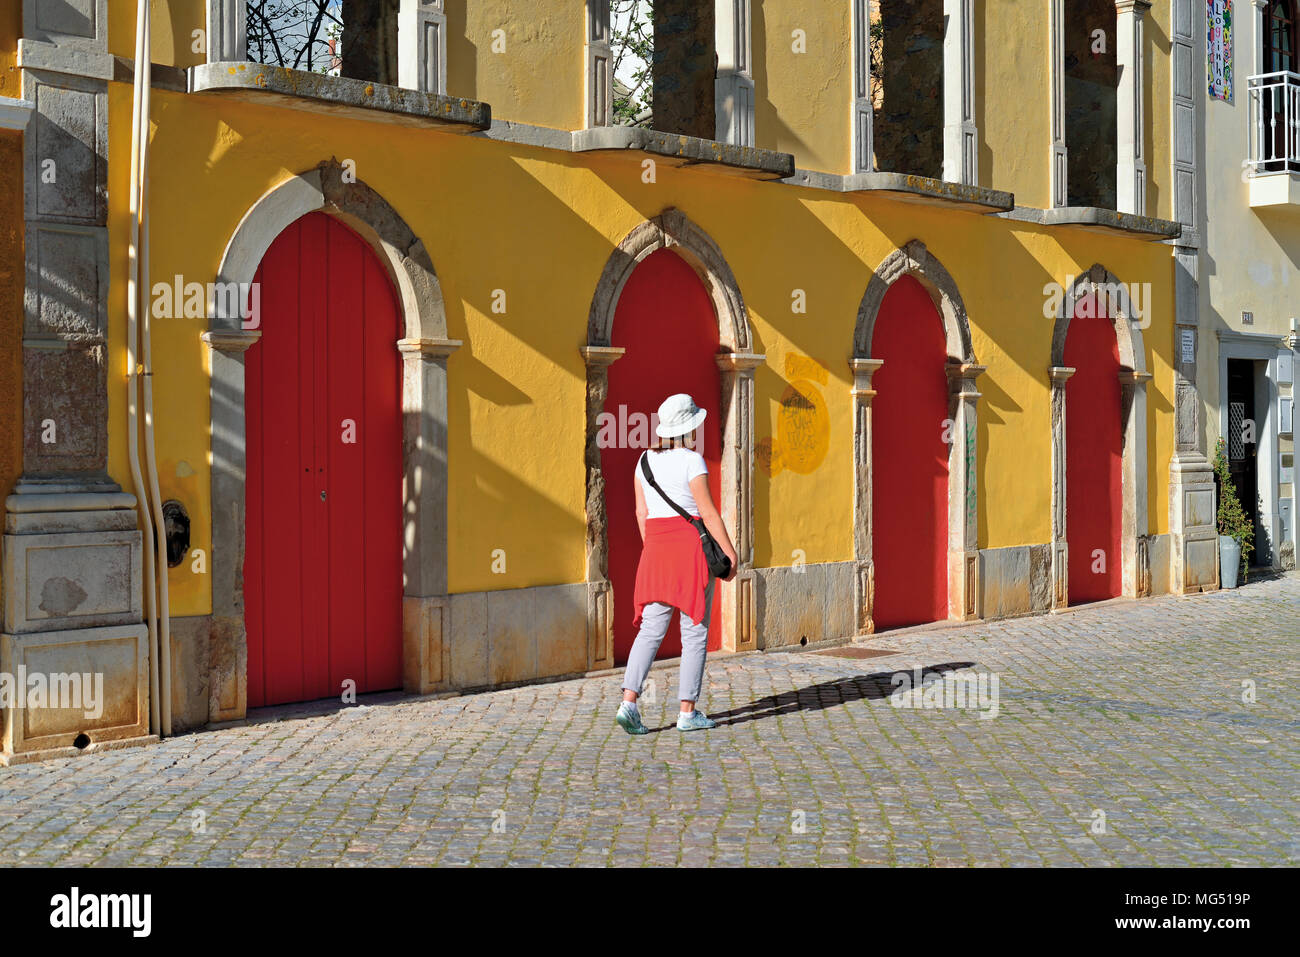 Woman passing a historic building with yellow facade and red doors - Stock Image